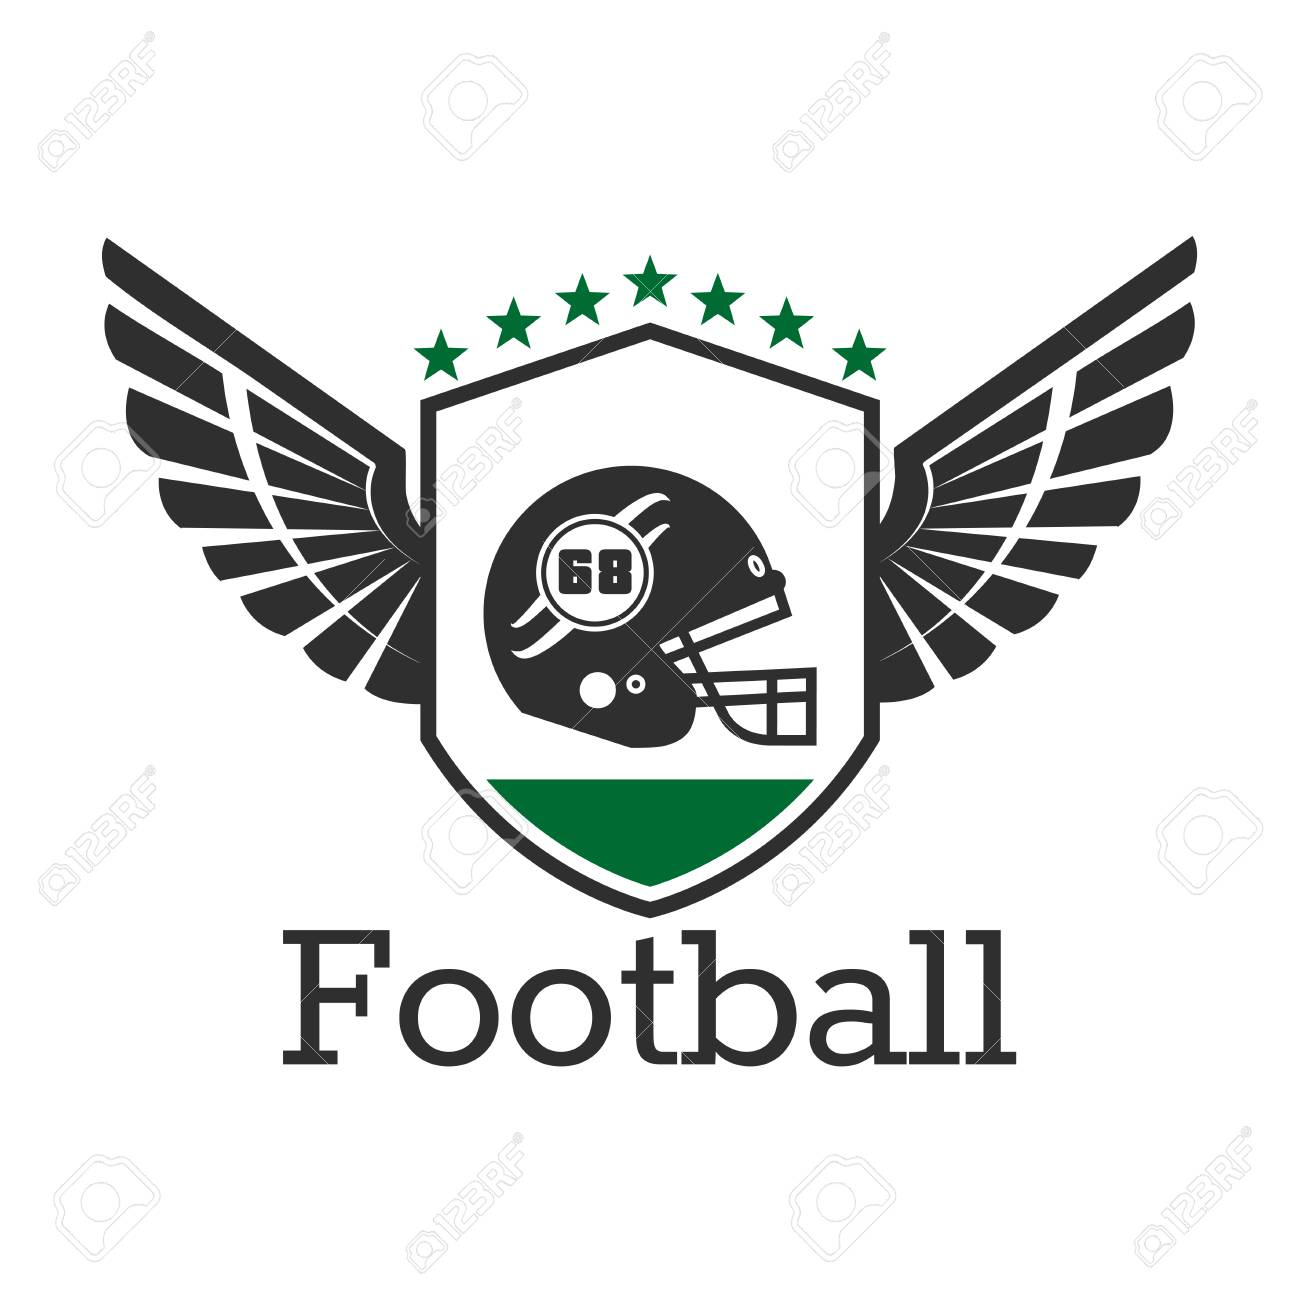 a0a09c665d8 American football retro badge of protective helmet with face mask on winged  shield with stars on